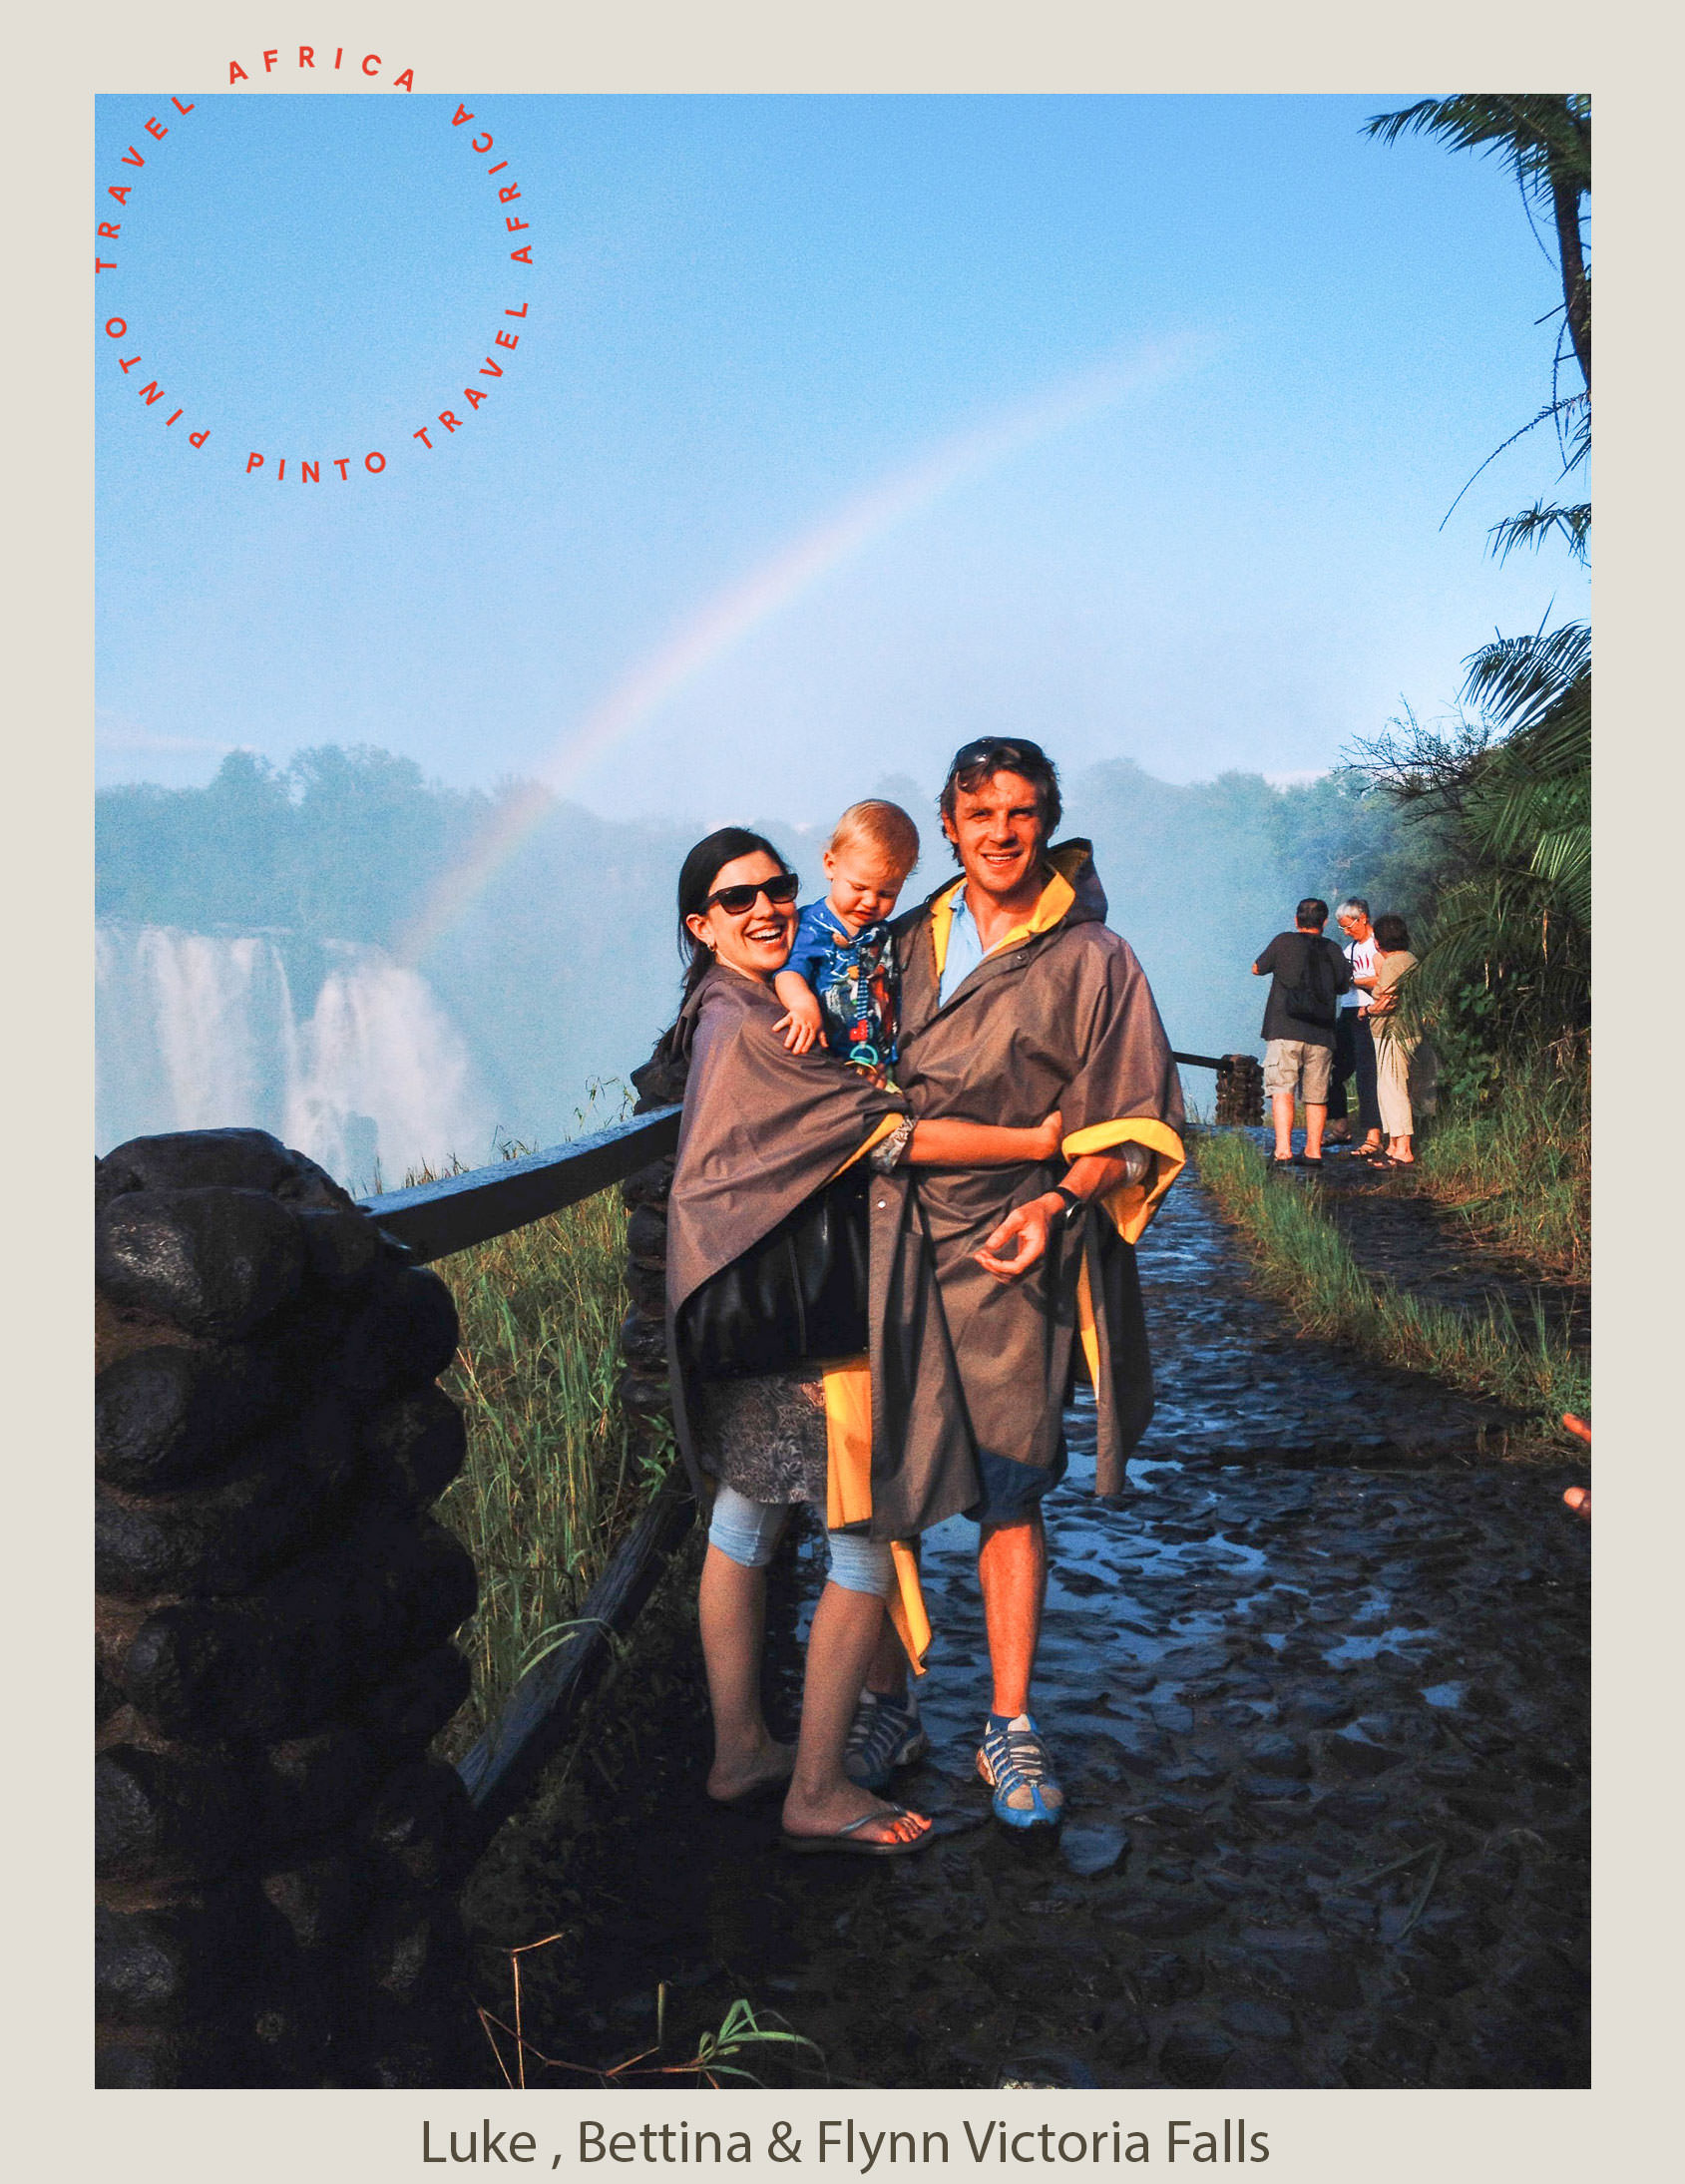 luke-flynn-bettina-victoria-falls-travel-africa-pintoafrica-com